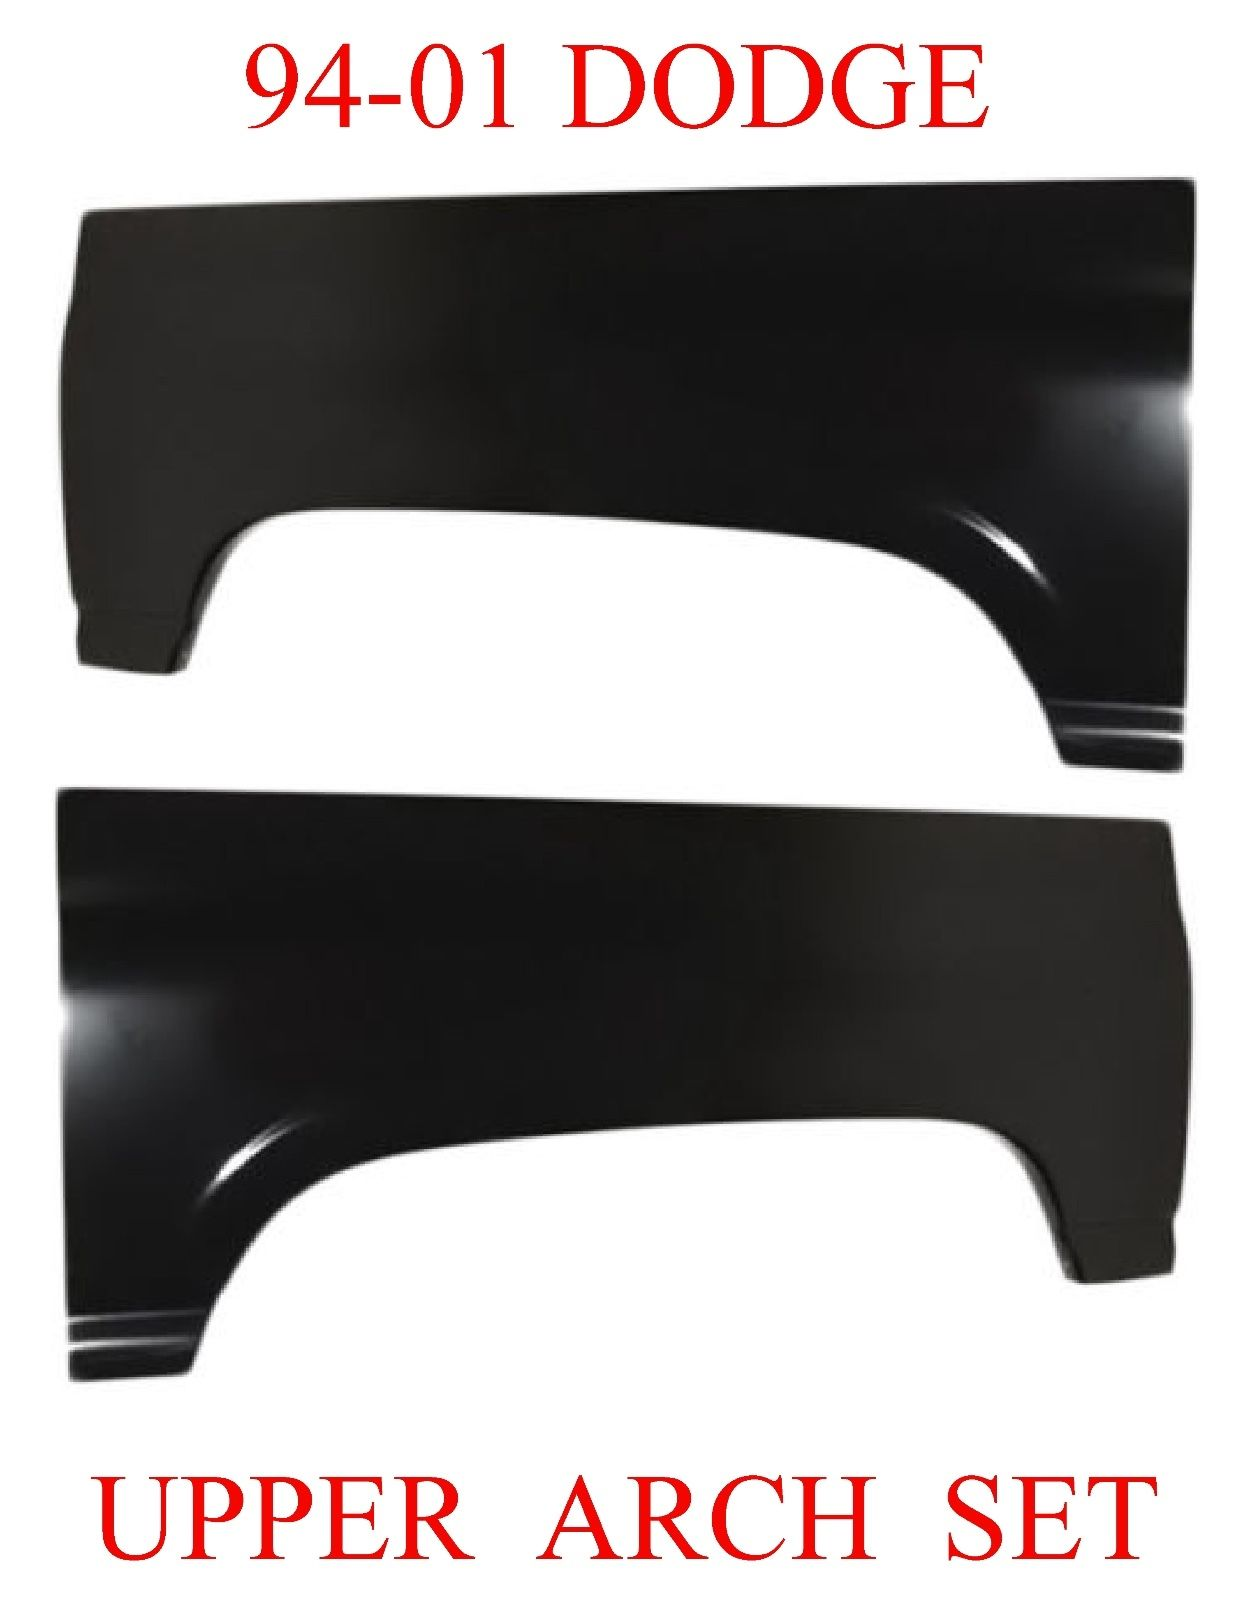 94-01 Dodge Ram Upper Arch Set